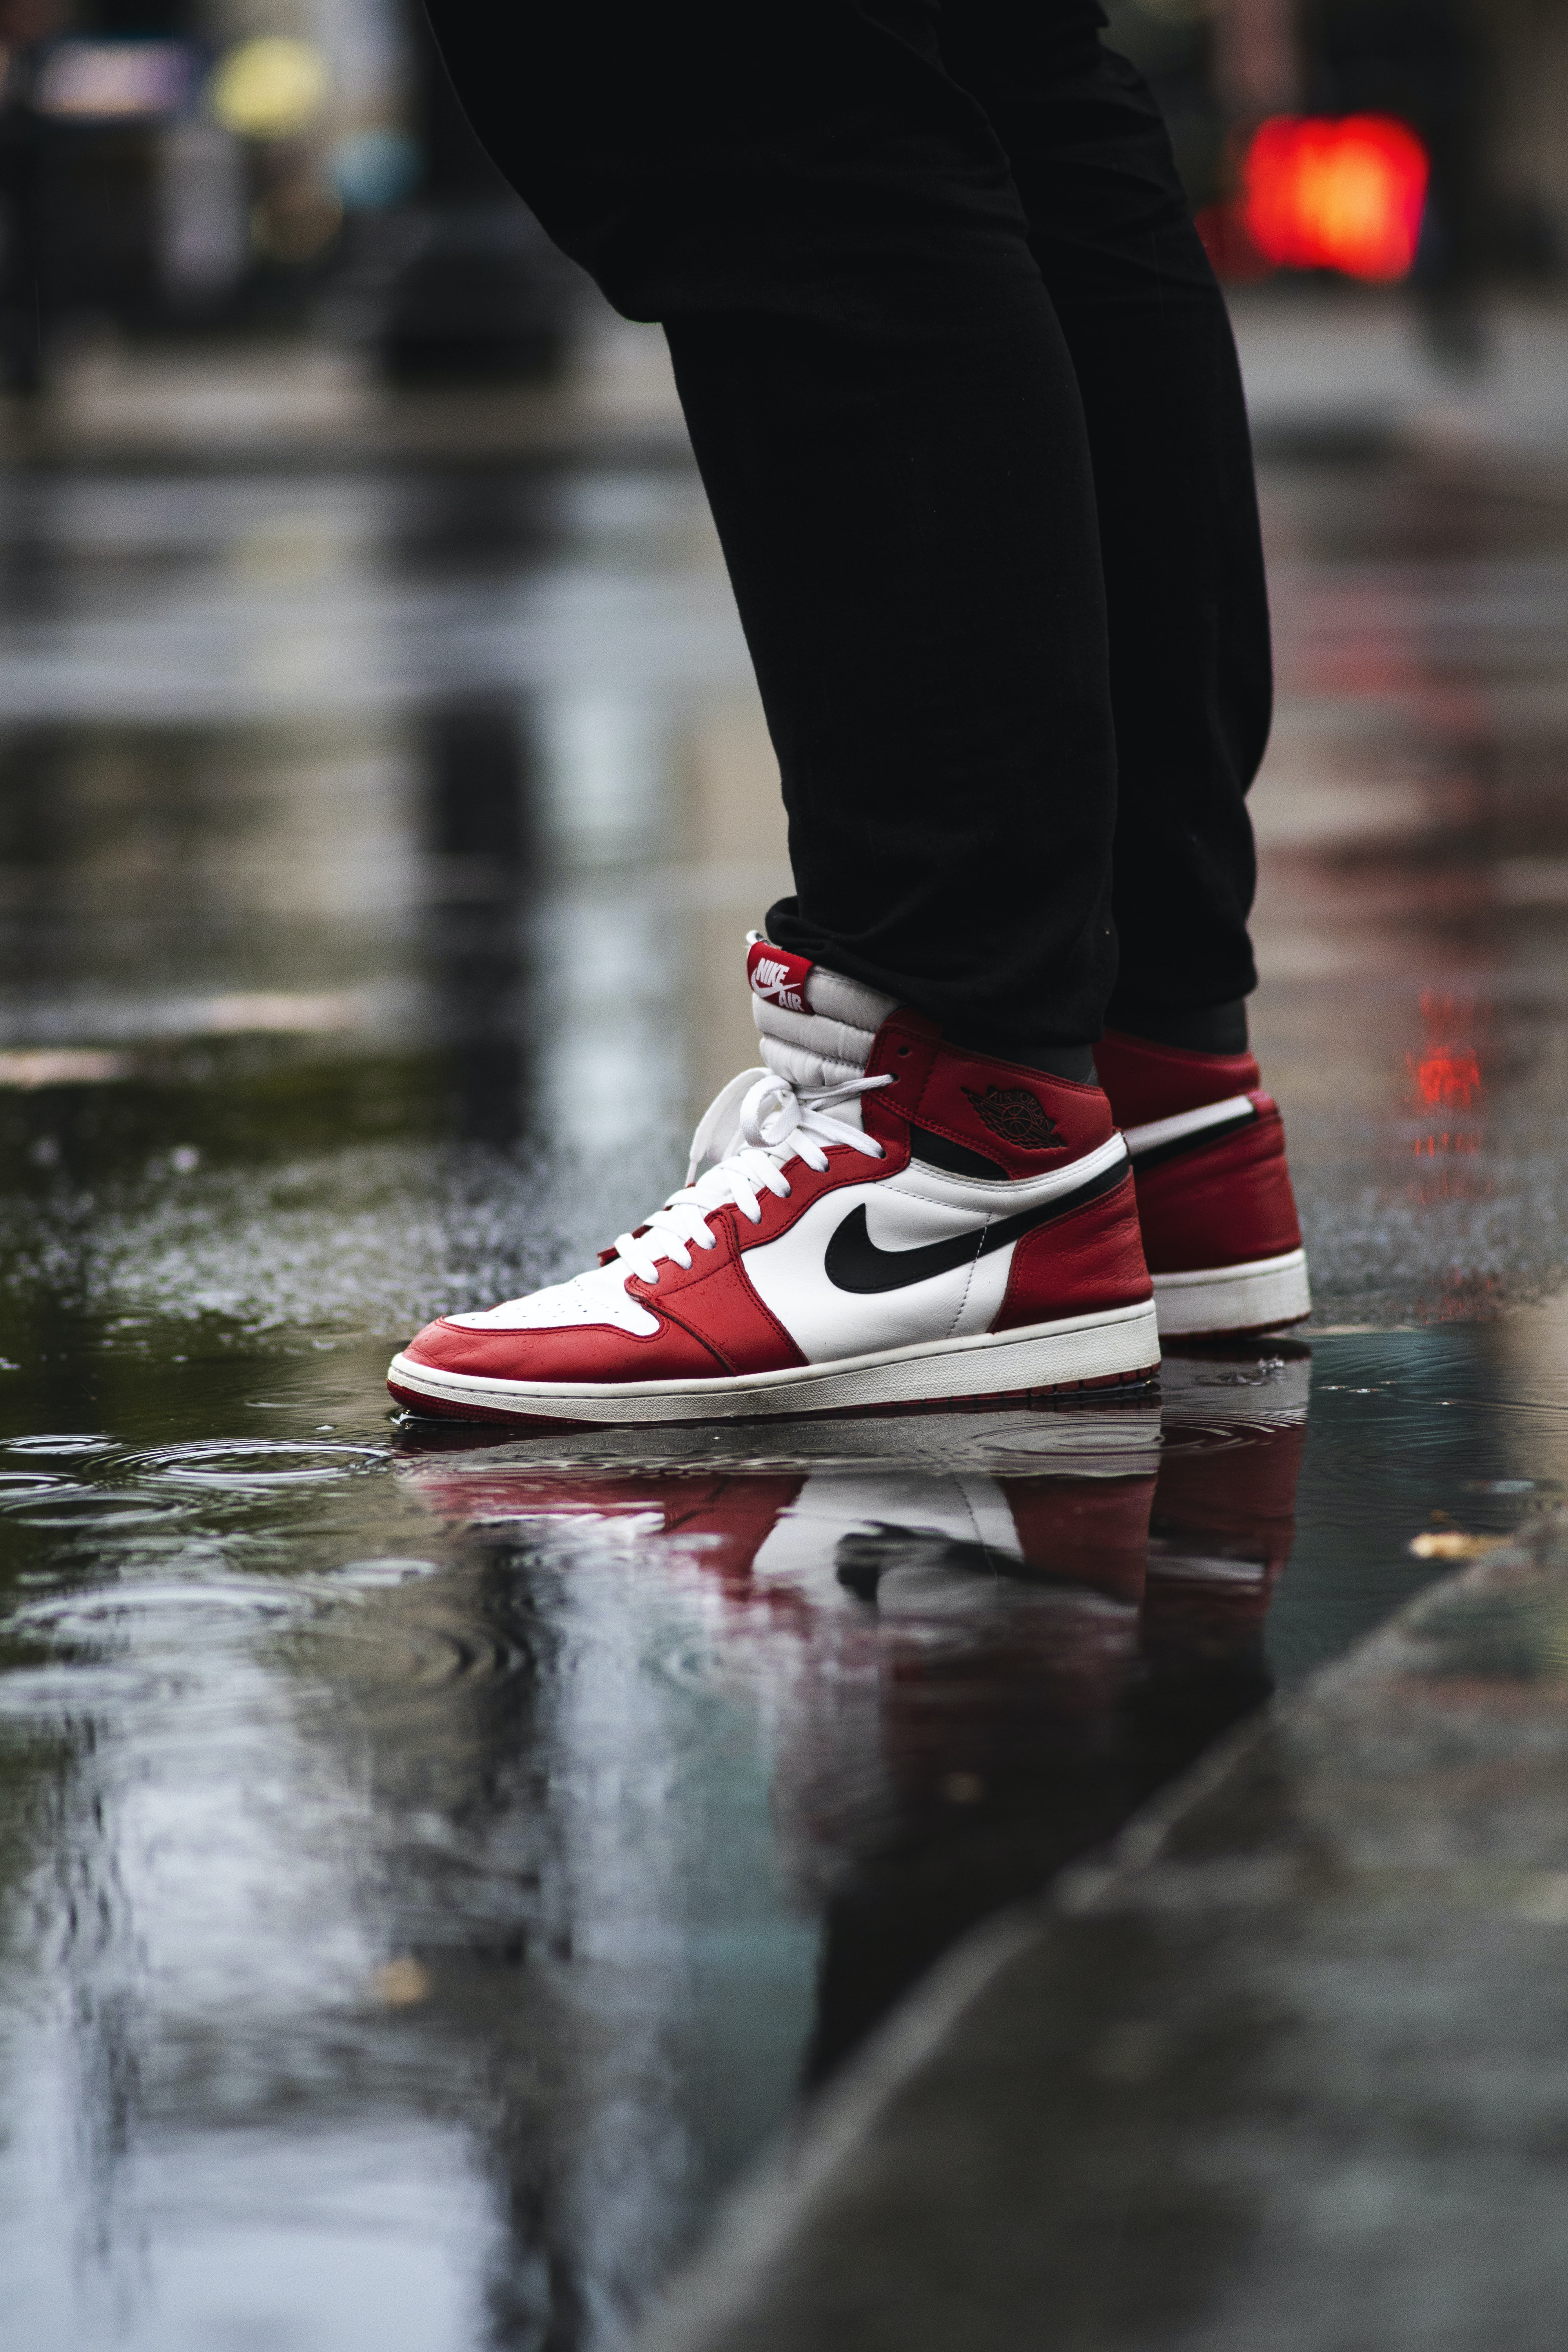 selective focus photography of person wearing white-red-and-black Air Jordan 1's Chicago